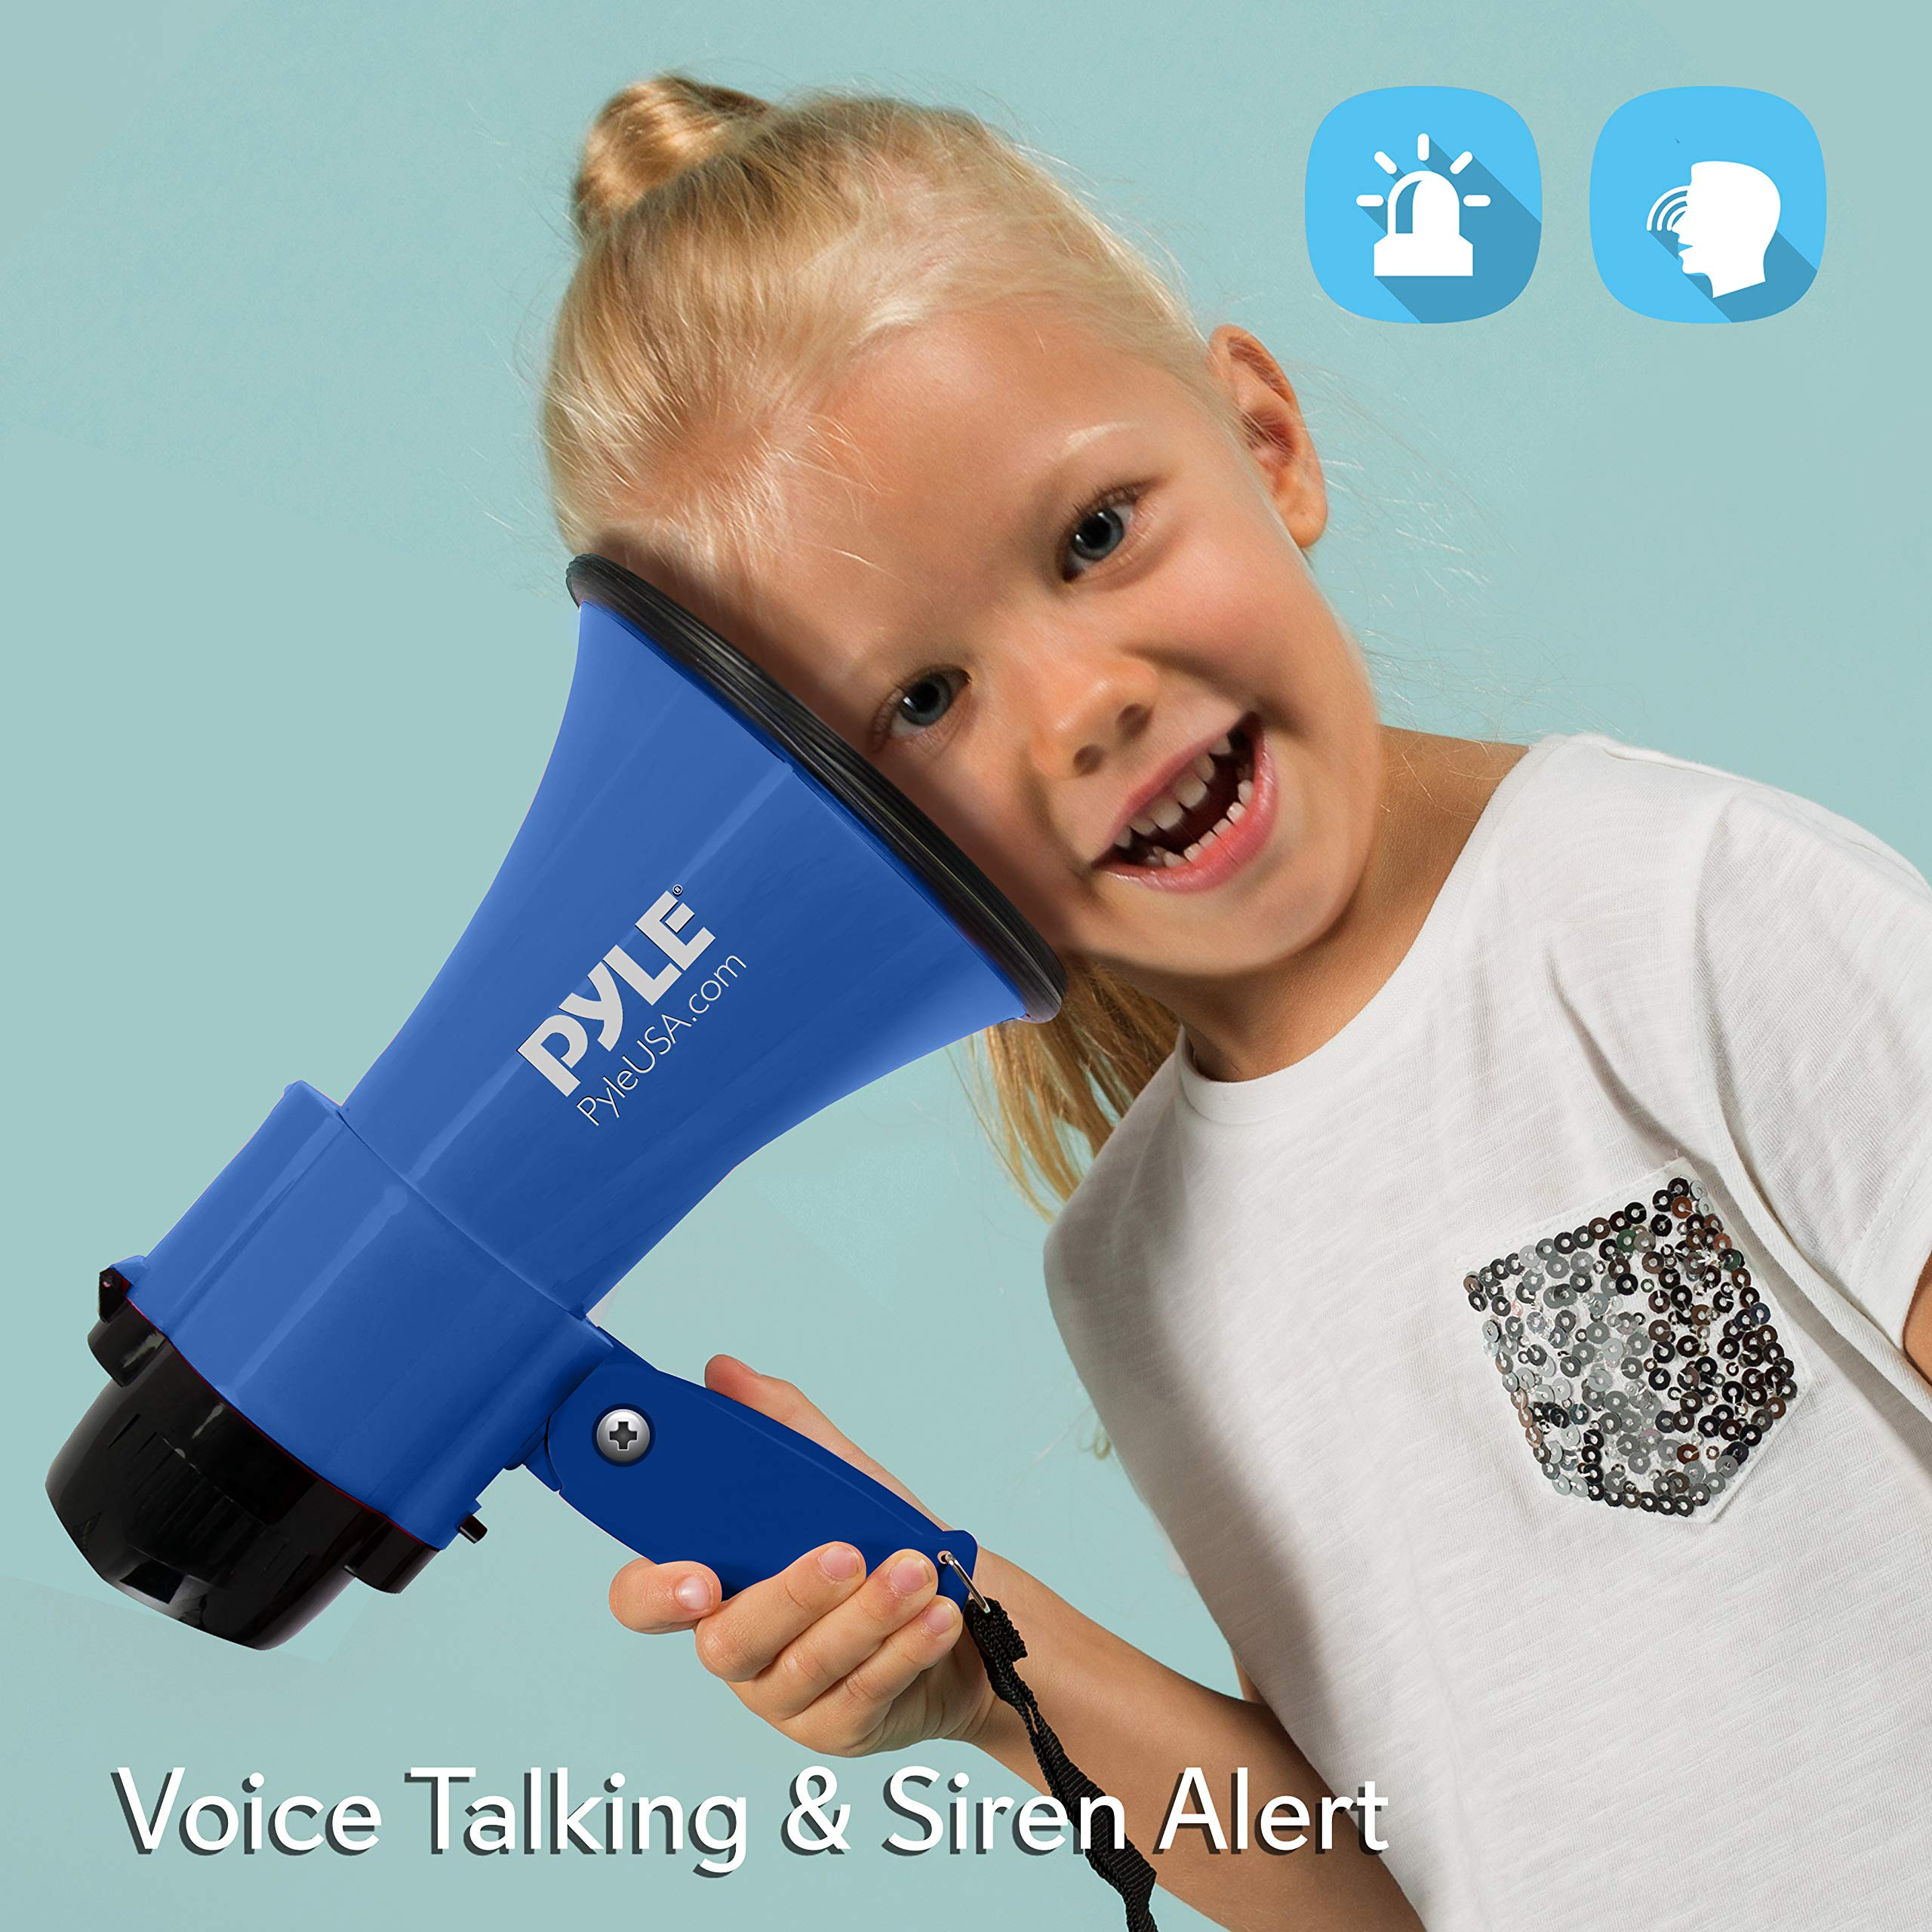 Portable Megaphone Speaker Siren Bullhorn - Compact and Battery Operated with 30 Watt Power, Microphone, 2 Modes, PA Sound and Foldable Handle for Cheerleading and Police Use - Pyle PMP31BL (Blue) by Pyle (Image #5)